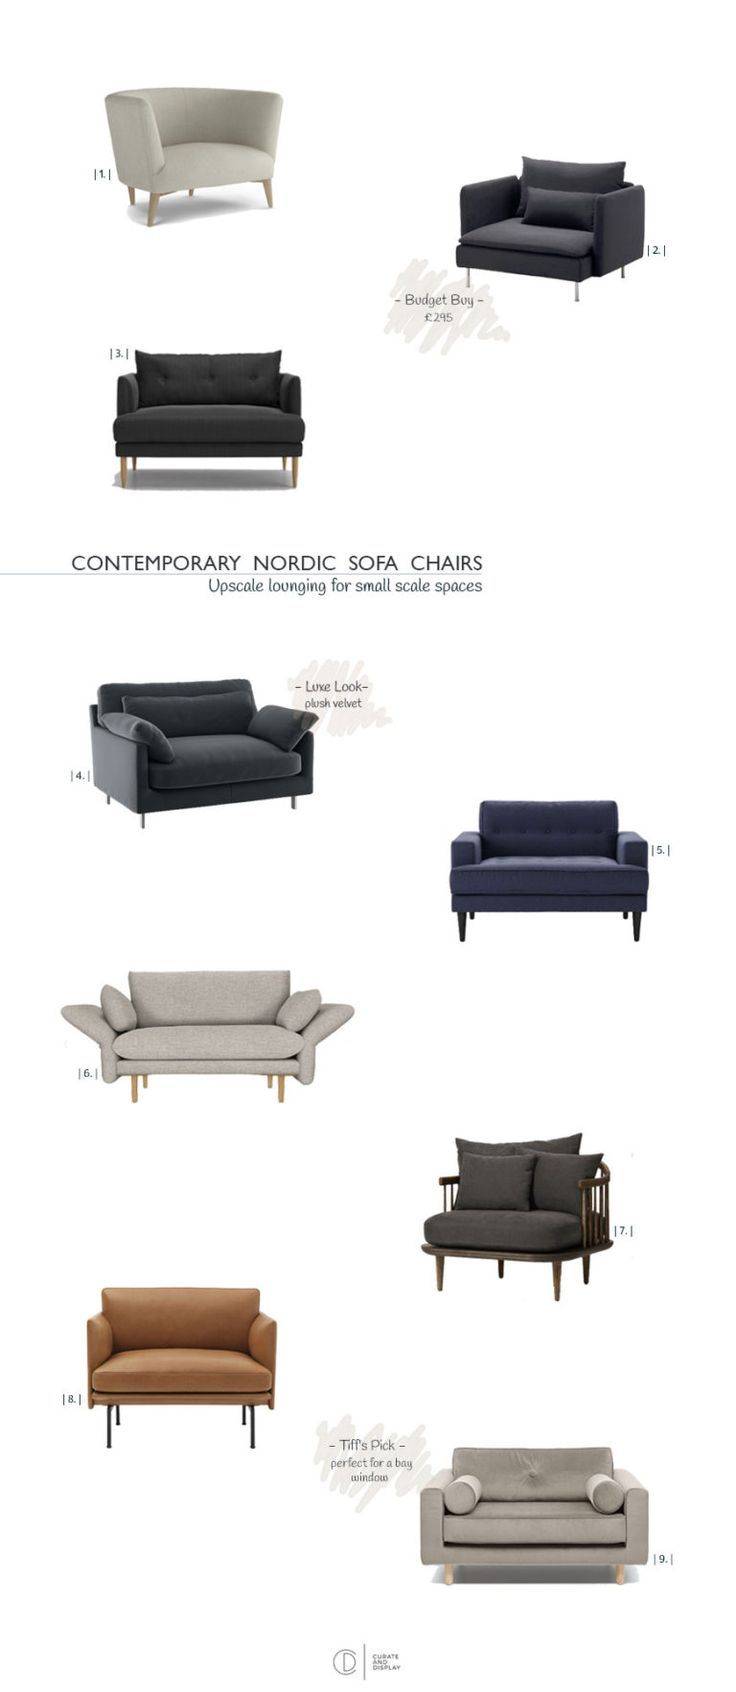 The Nordic Style Sofa Chair Edit From 300 Home Dec